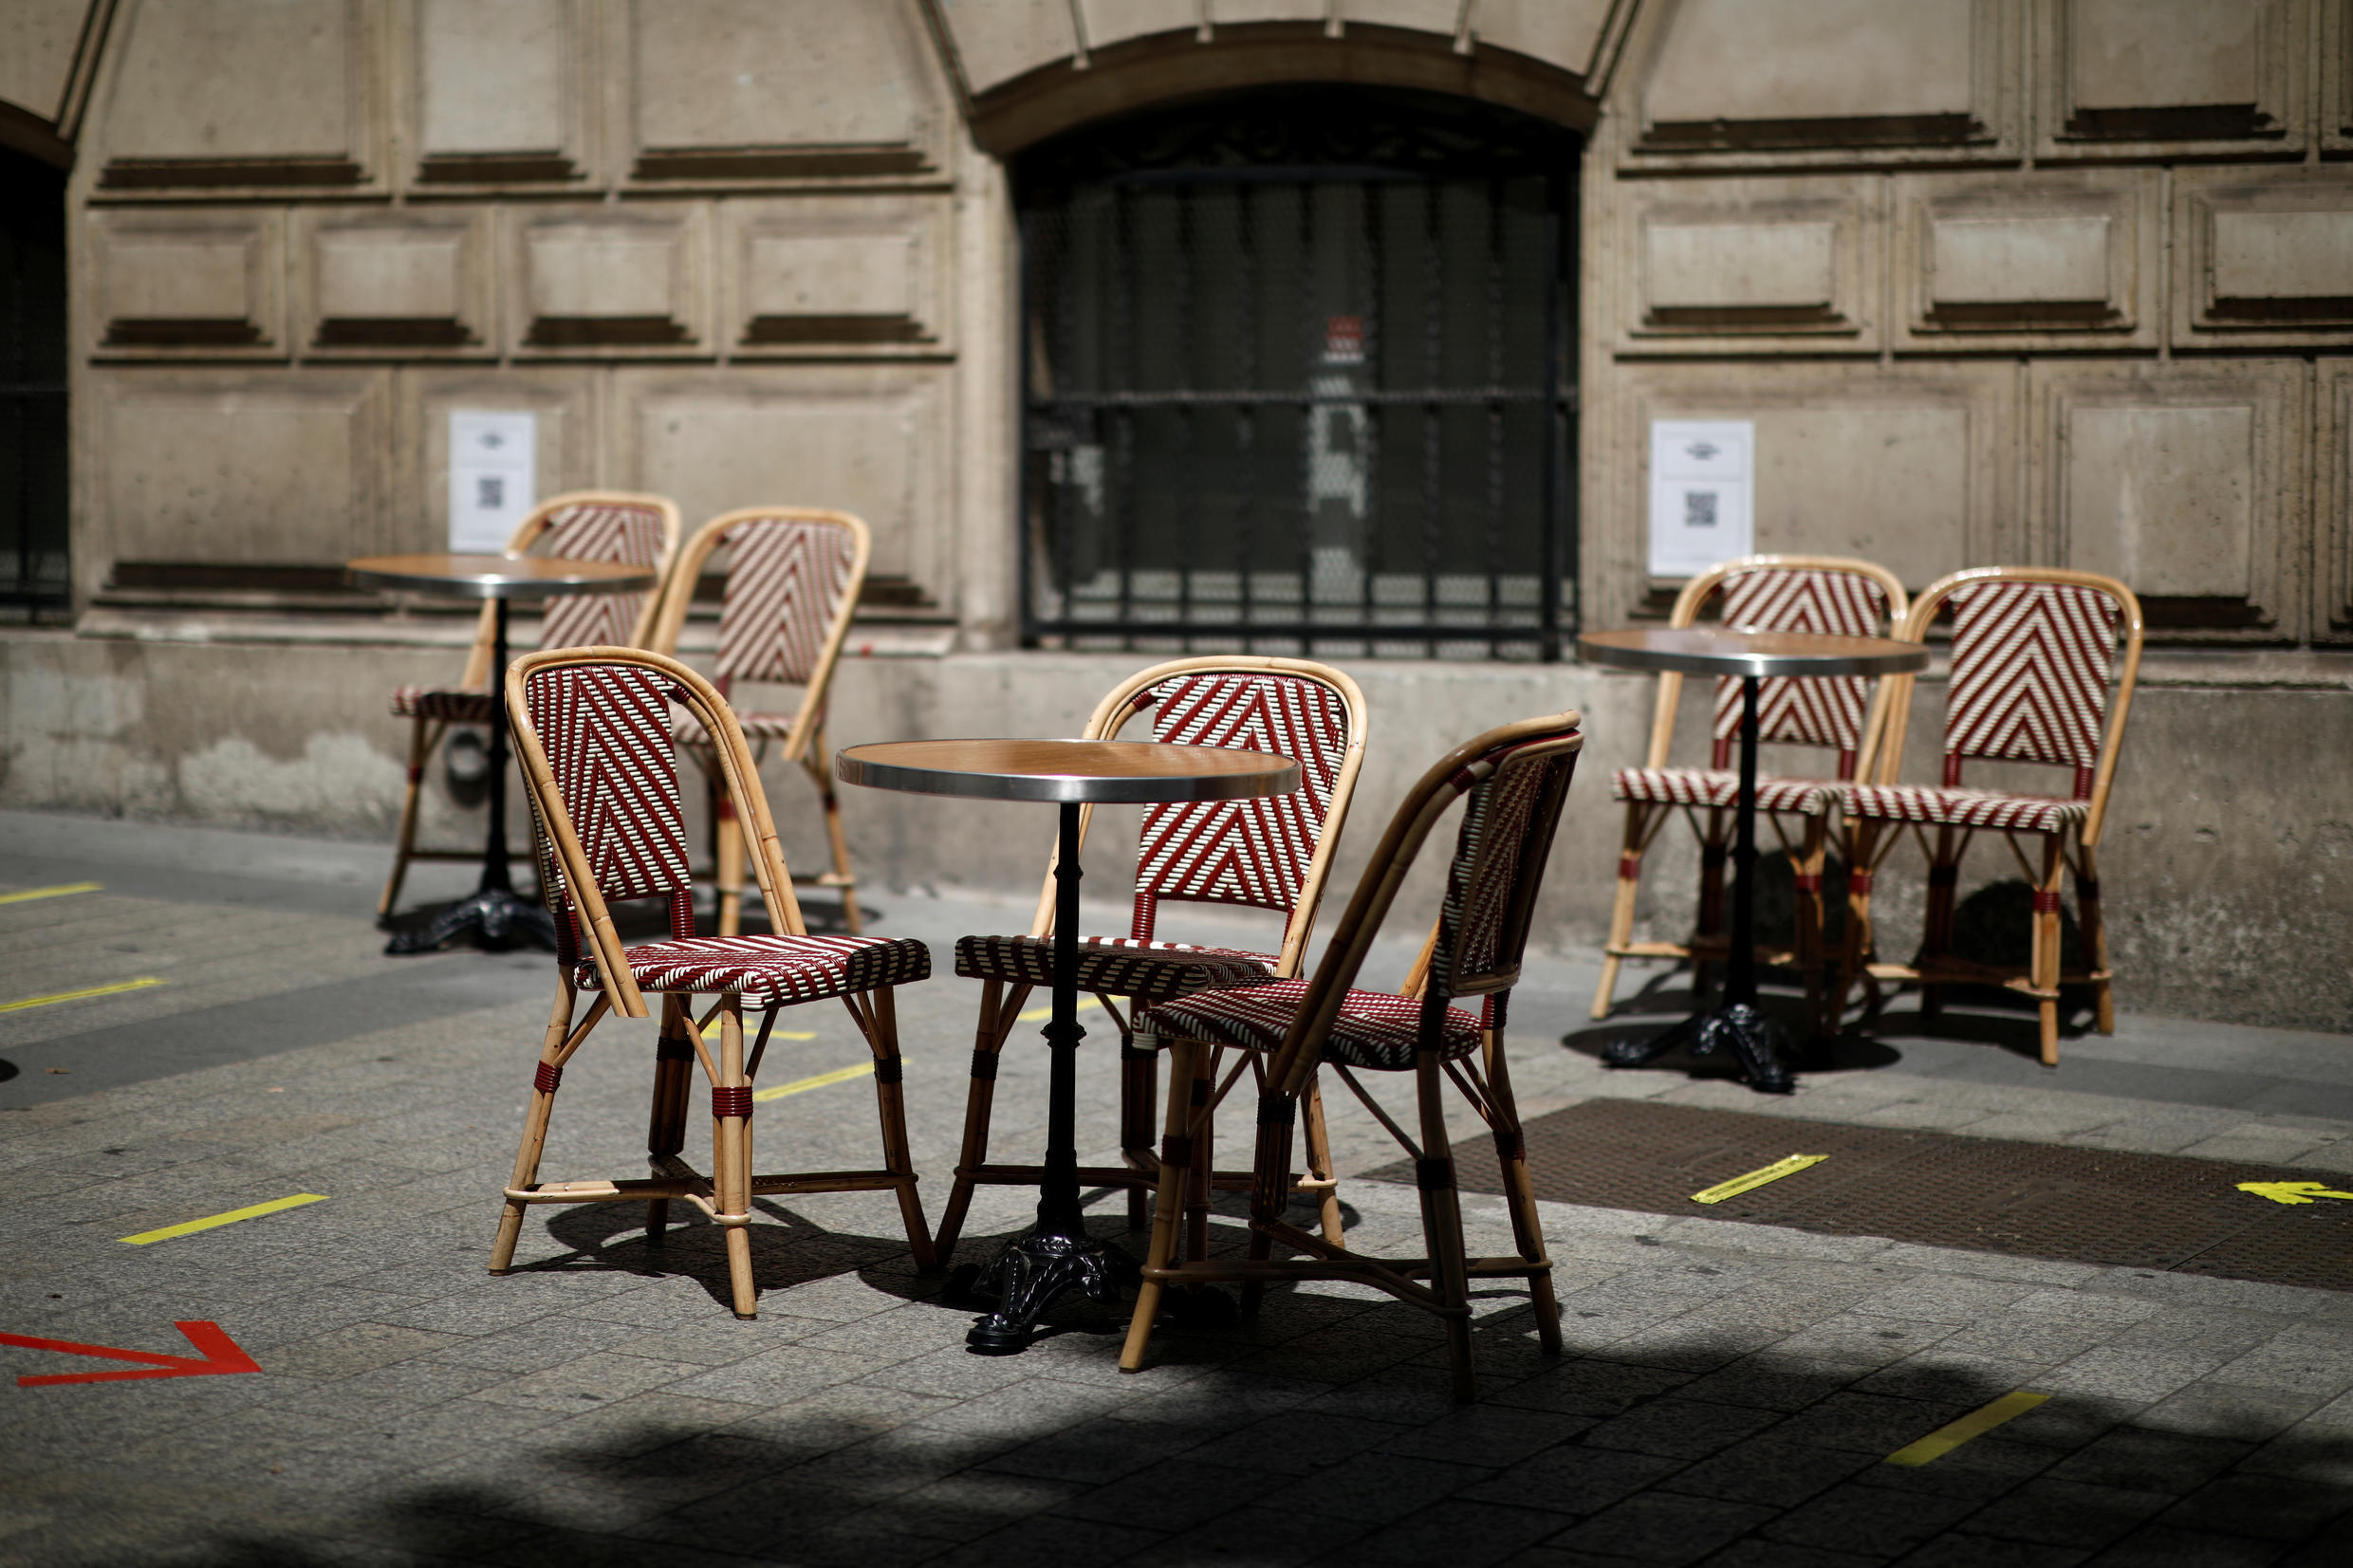 Social distancing signs are seen on the pavement near tables and chairs on a terrace of a restaurant in Paris as restaurants and cafes reopen in Paris on 2 June, 2020.